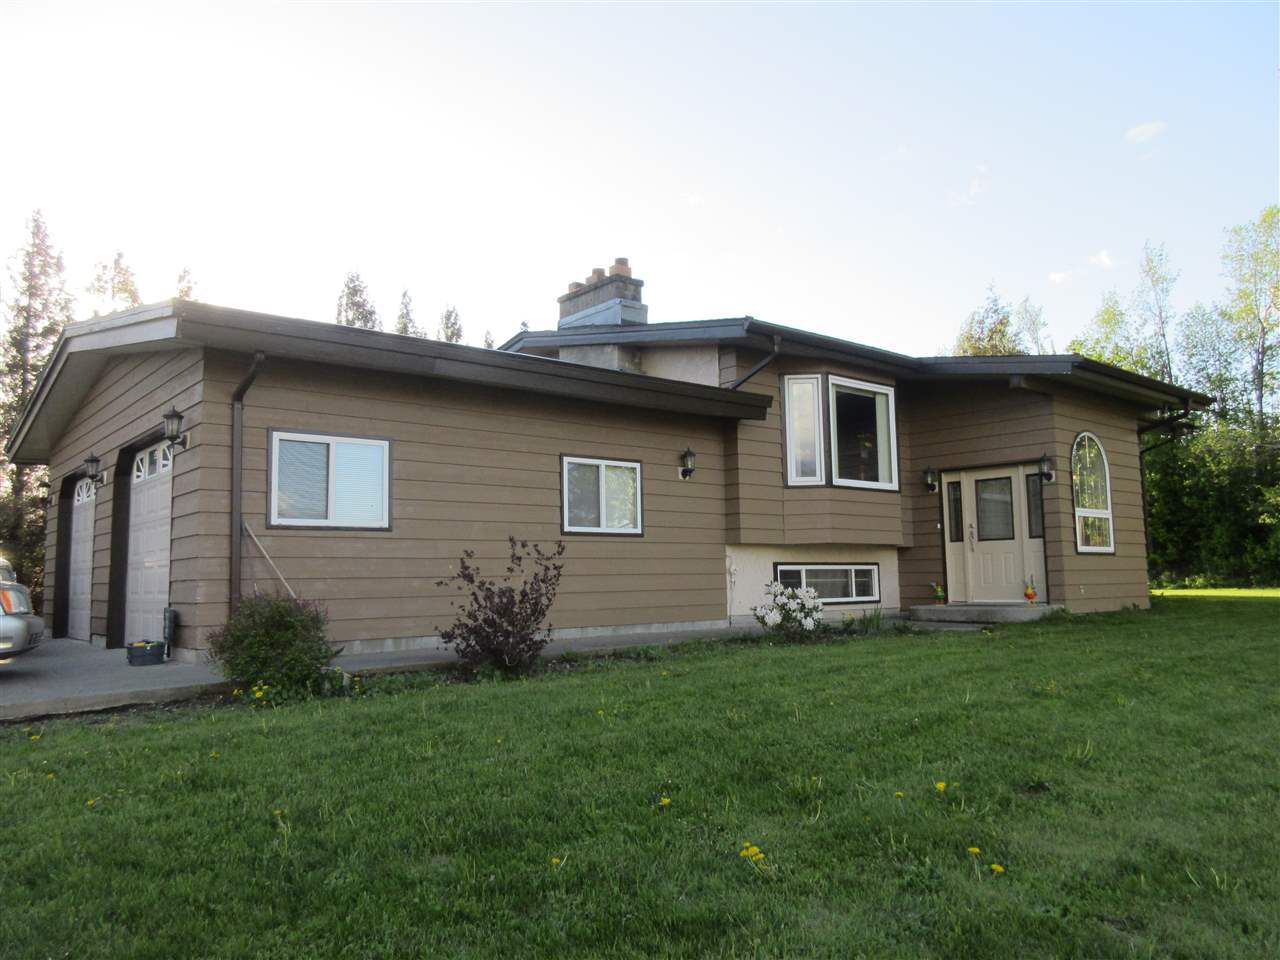 Main Photo: 38604 NO. 5 Road in Abbotsford: Sumas Prairie House for sale : MLS®# R2362035